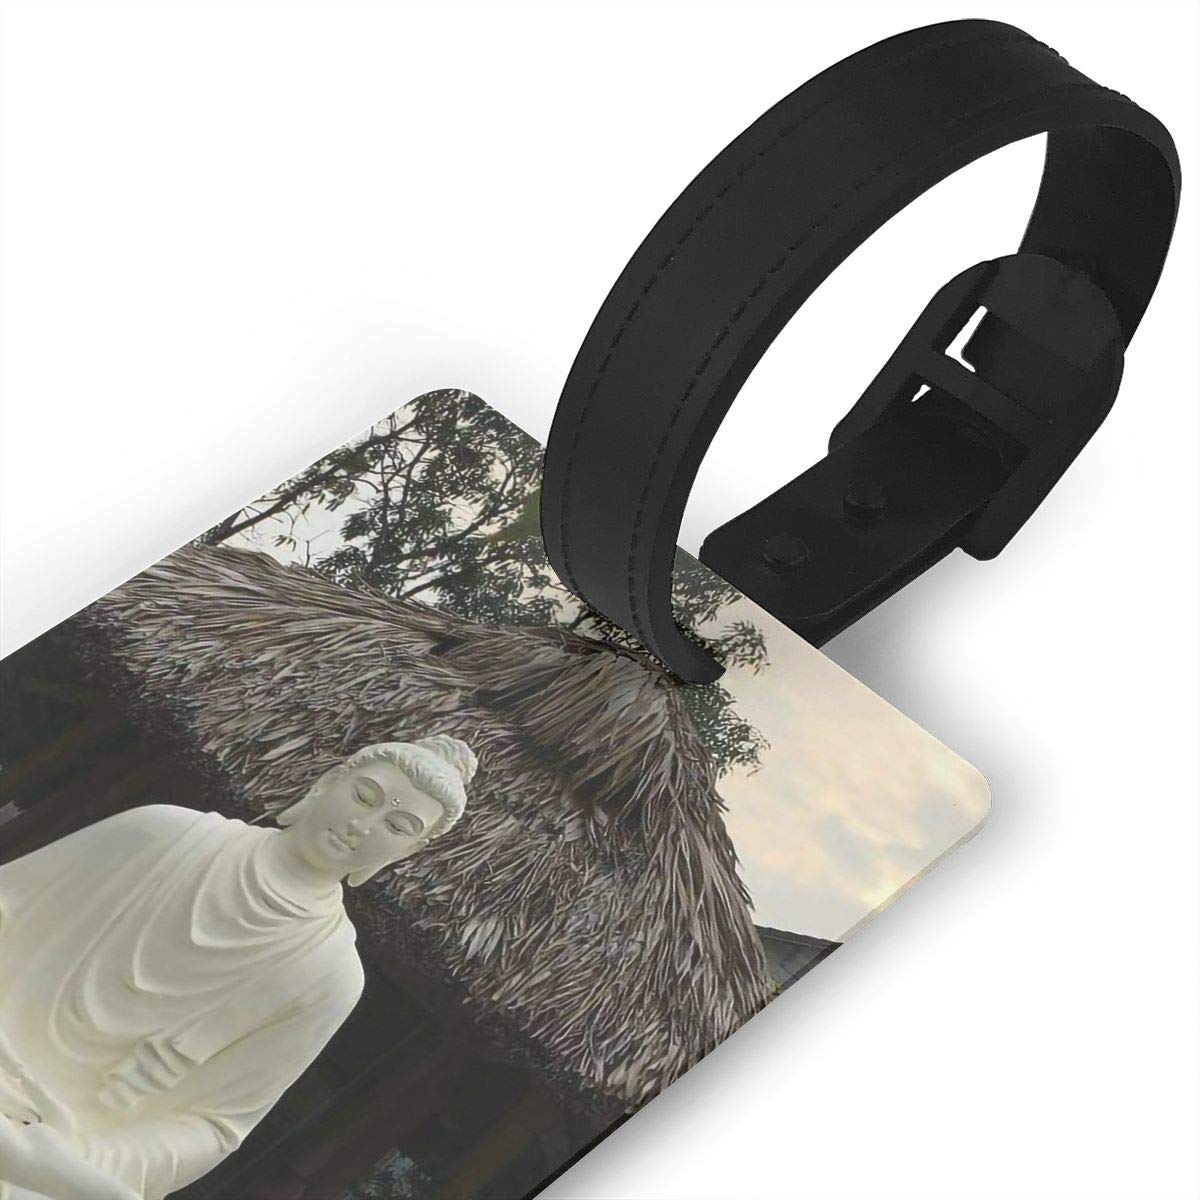 Buddhism Cruise Luggage Tag For Travel Bag Suitcase Accessories 2 Pack Luggage Tags